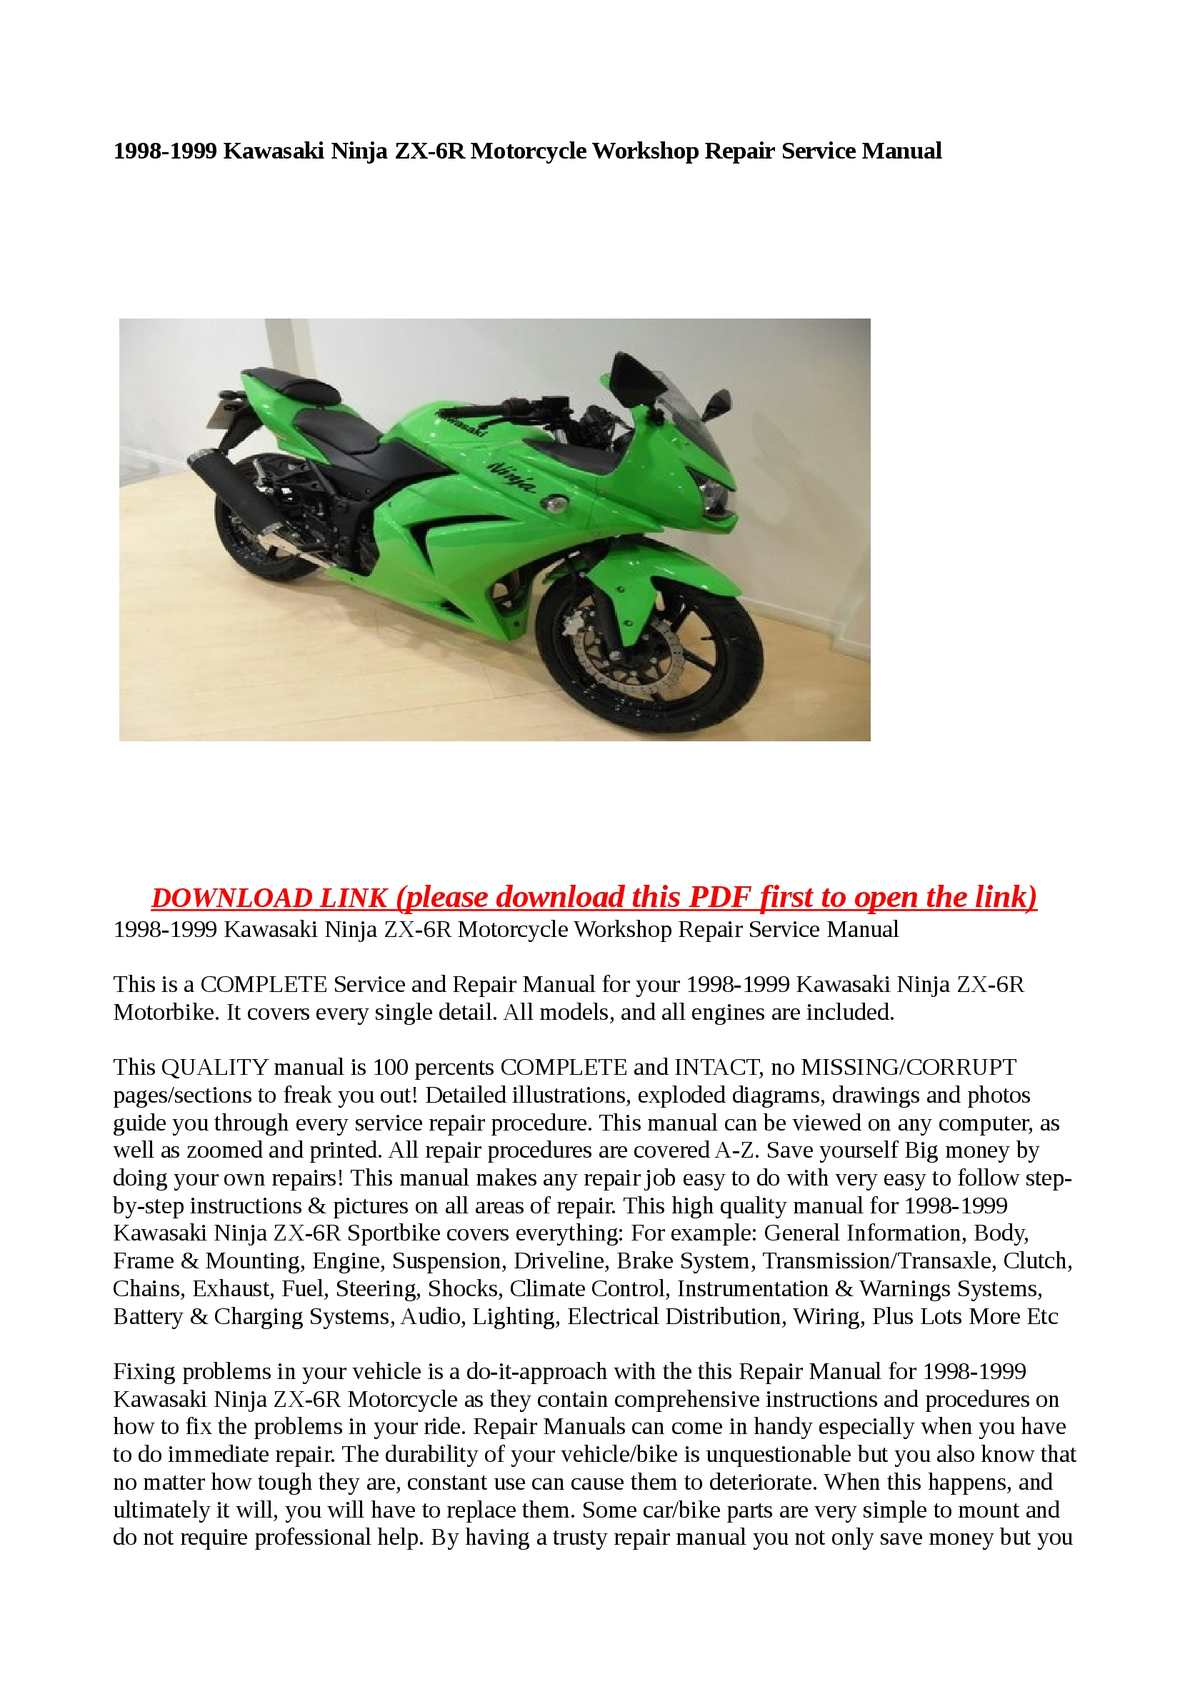 Calaméo - 1998-1999 Kawasaki Ninja ZX-6R Motorcycle Workshop Repair Service  Manual